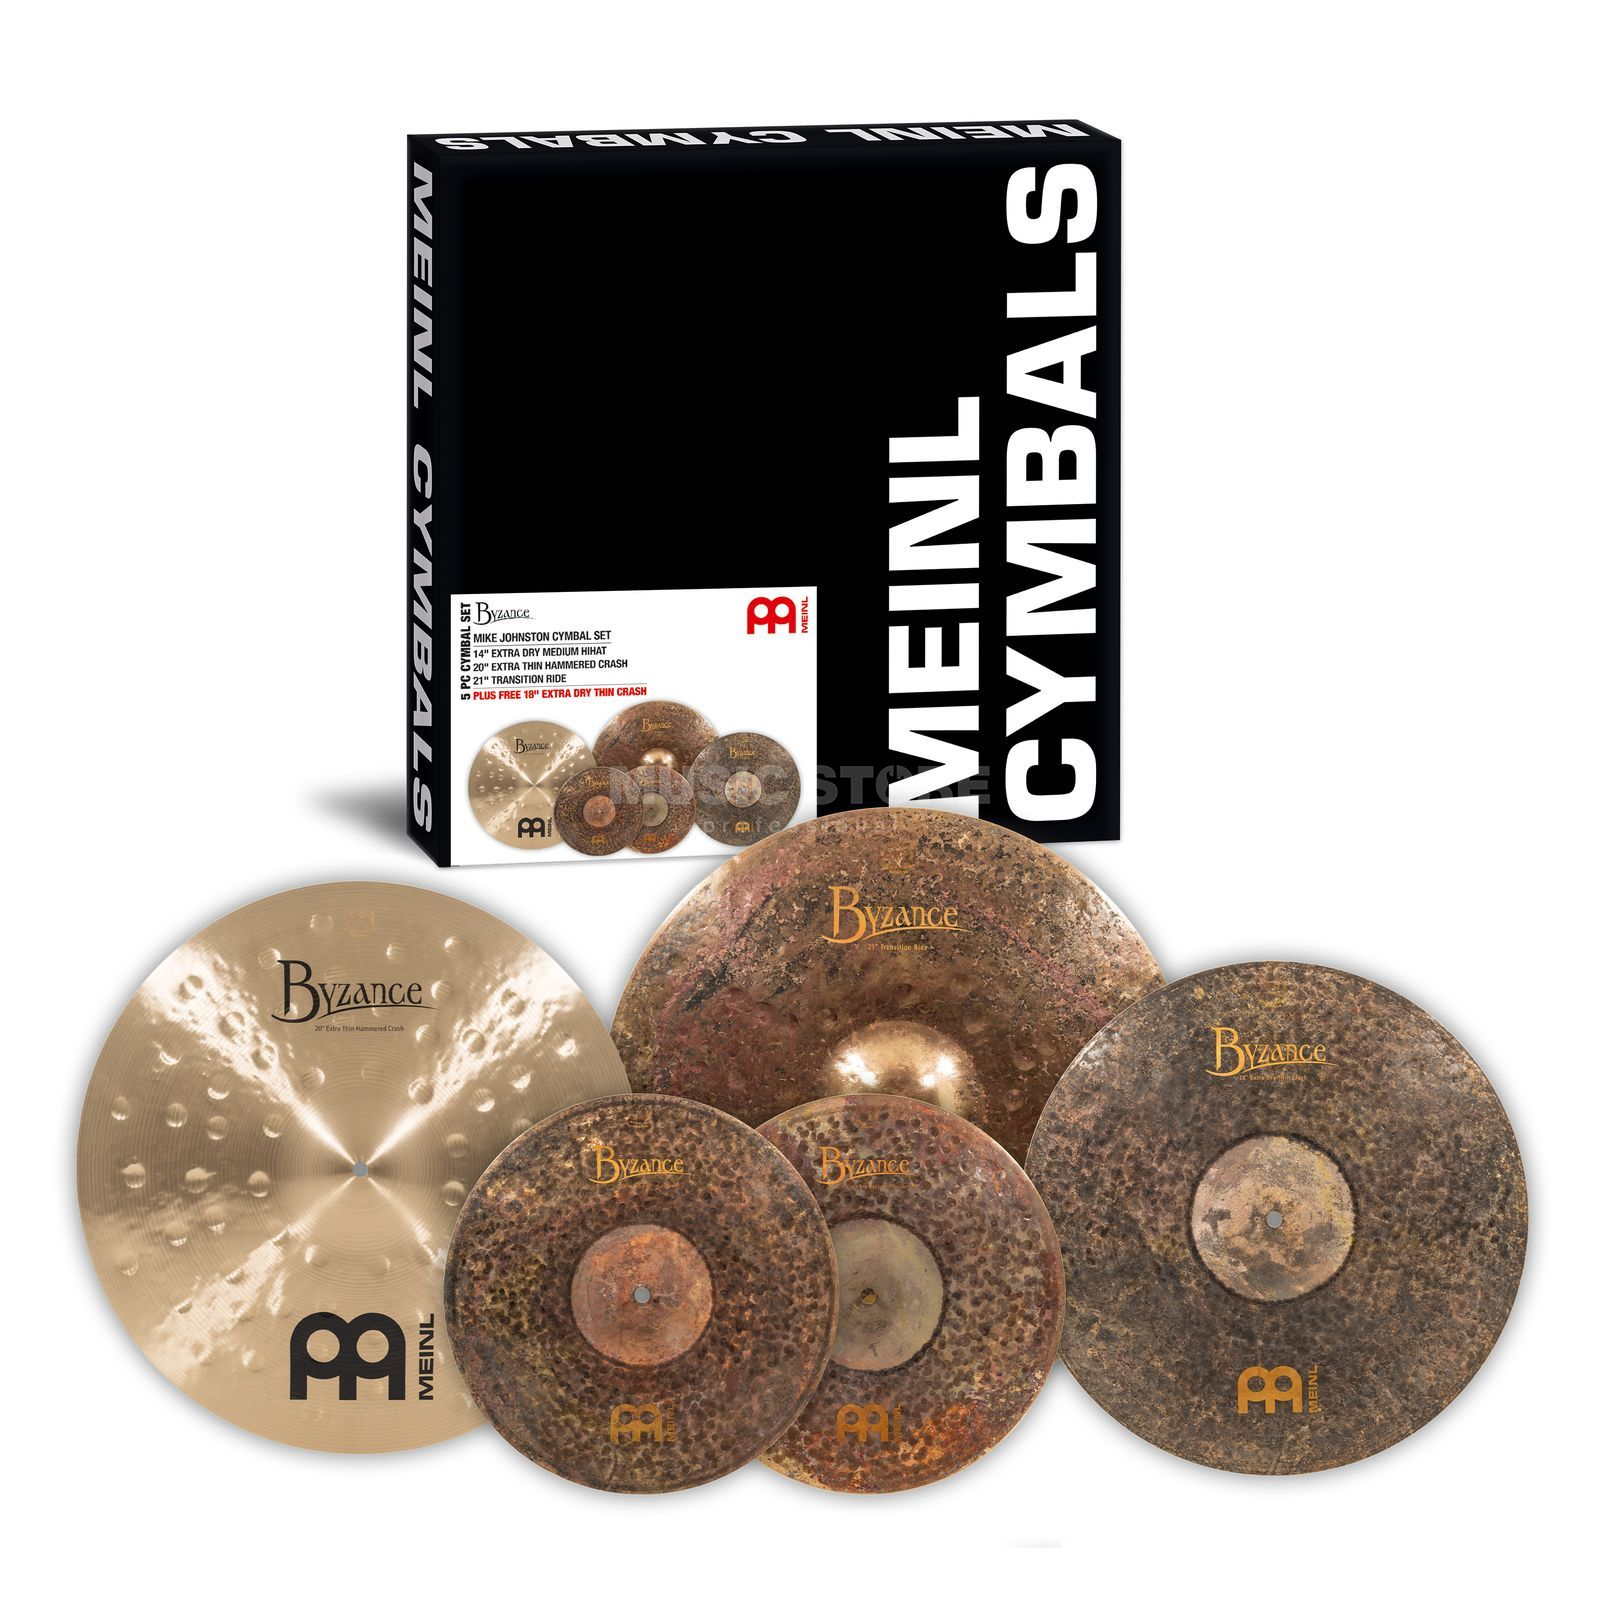 Meinl Byzance Cymbal Set MJ401+18, Mike Johnston Produktbild